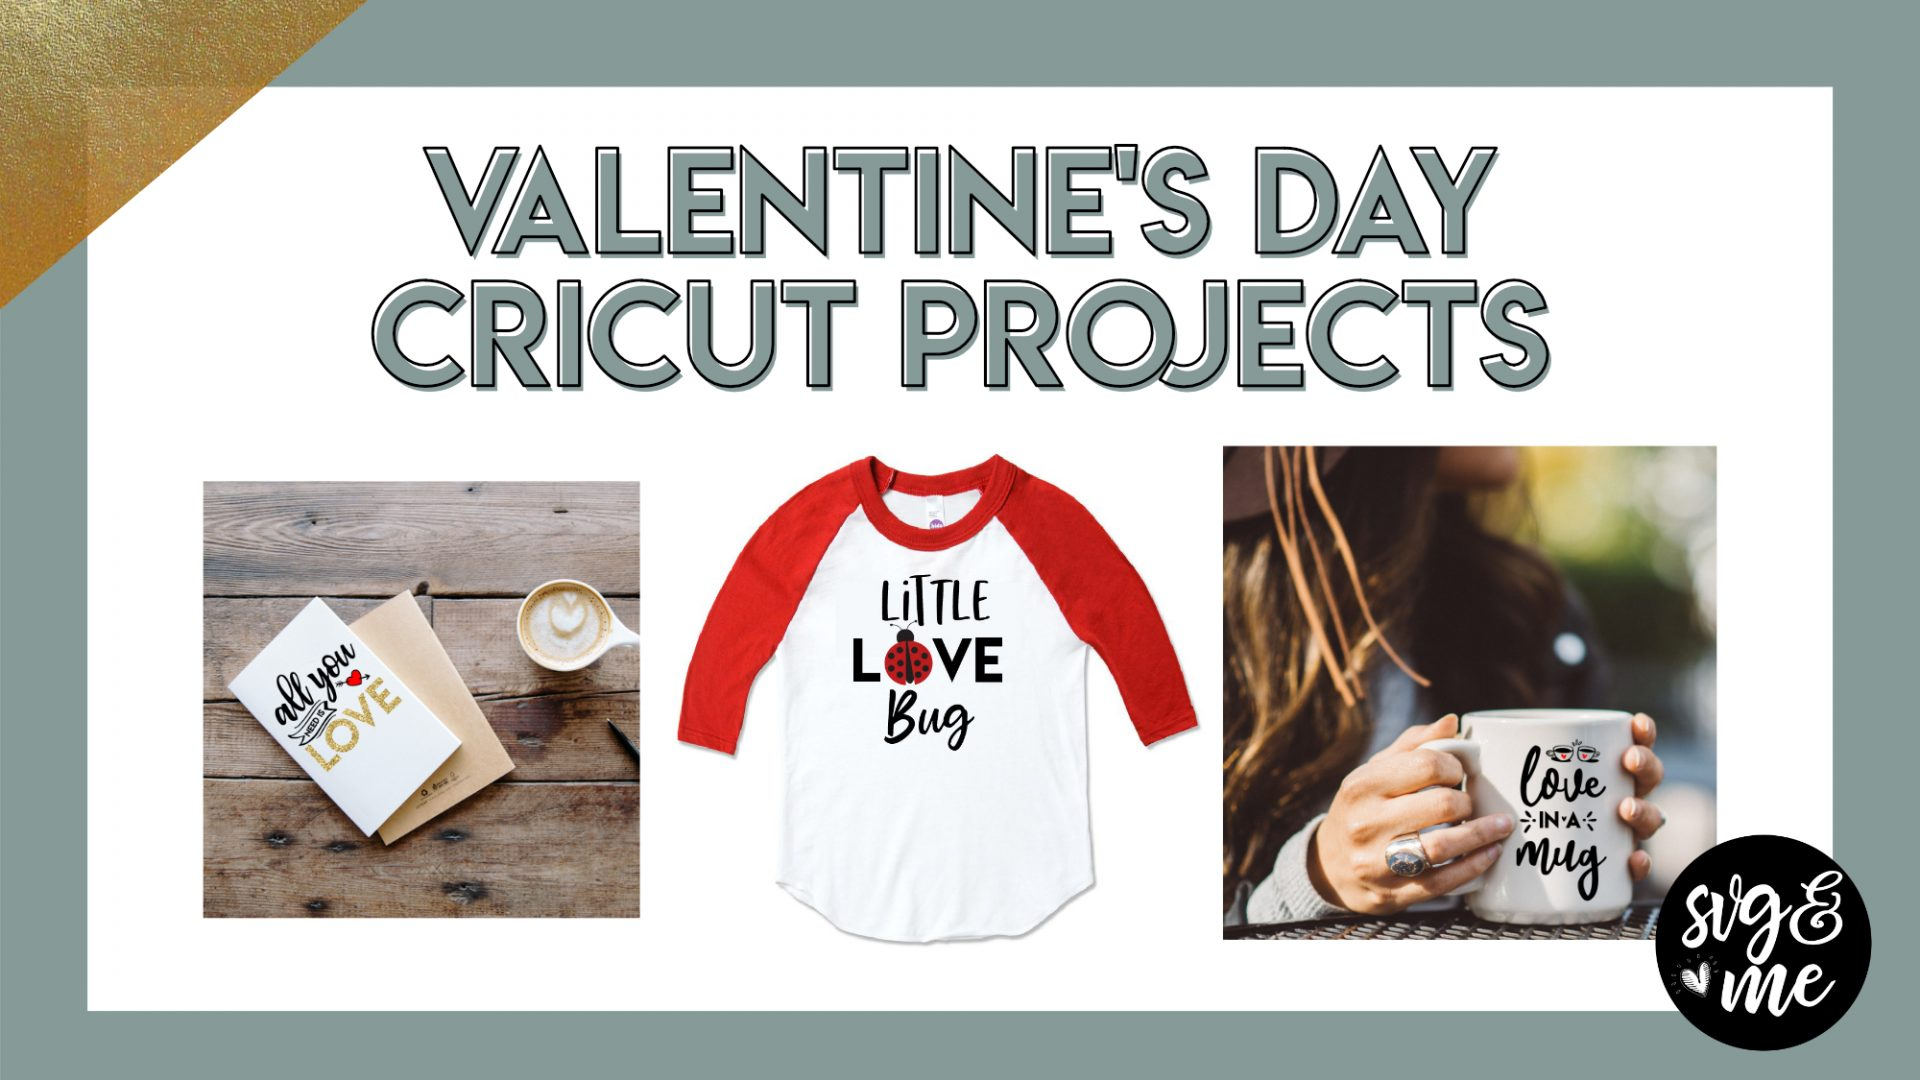 11 Diy Valentine S Day Cricut Projects To Decorate On A Budget Svg Me